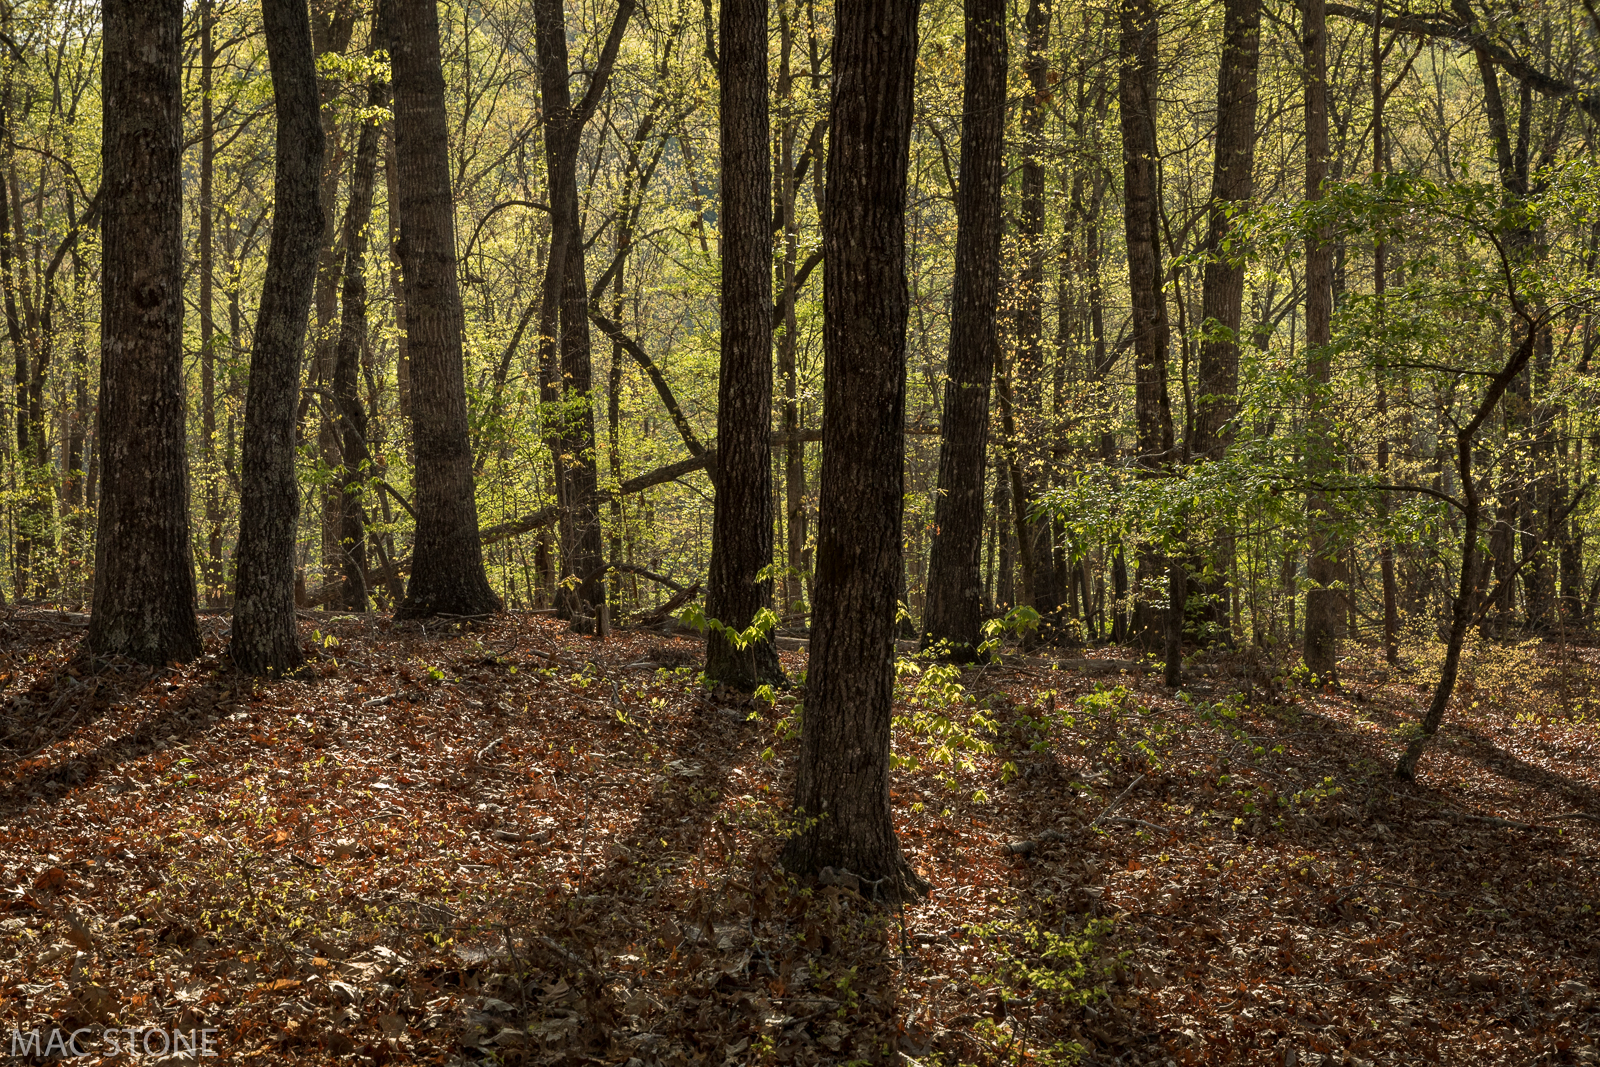 The acquisition builds on OSI's impact on the region: within a few miles of the Grassy Knob property, OSI has conserved almost 2,000 acres.